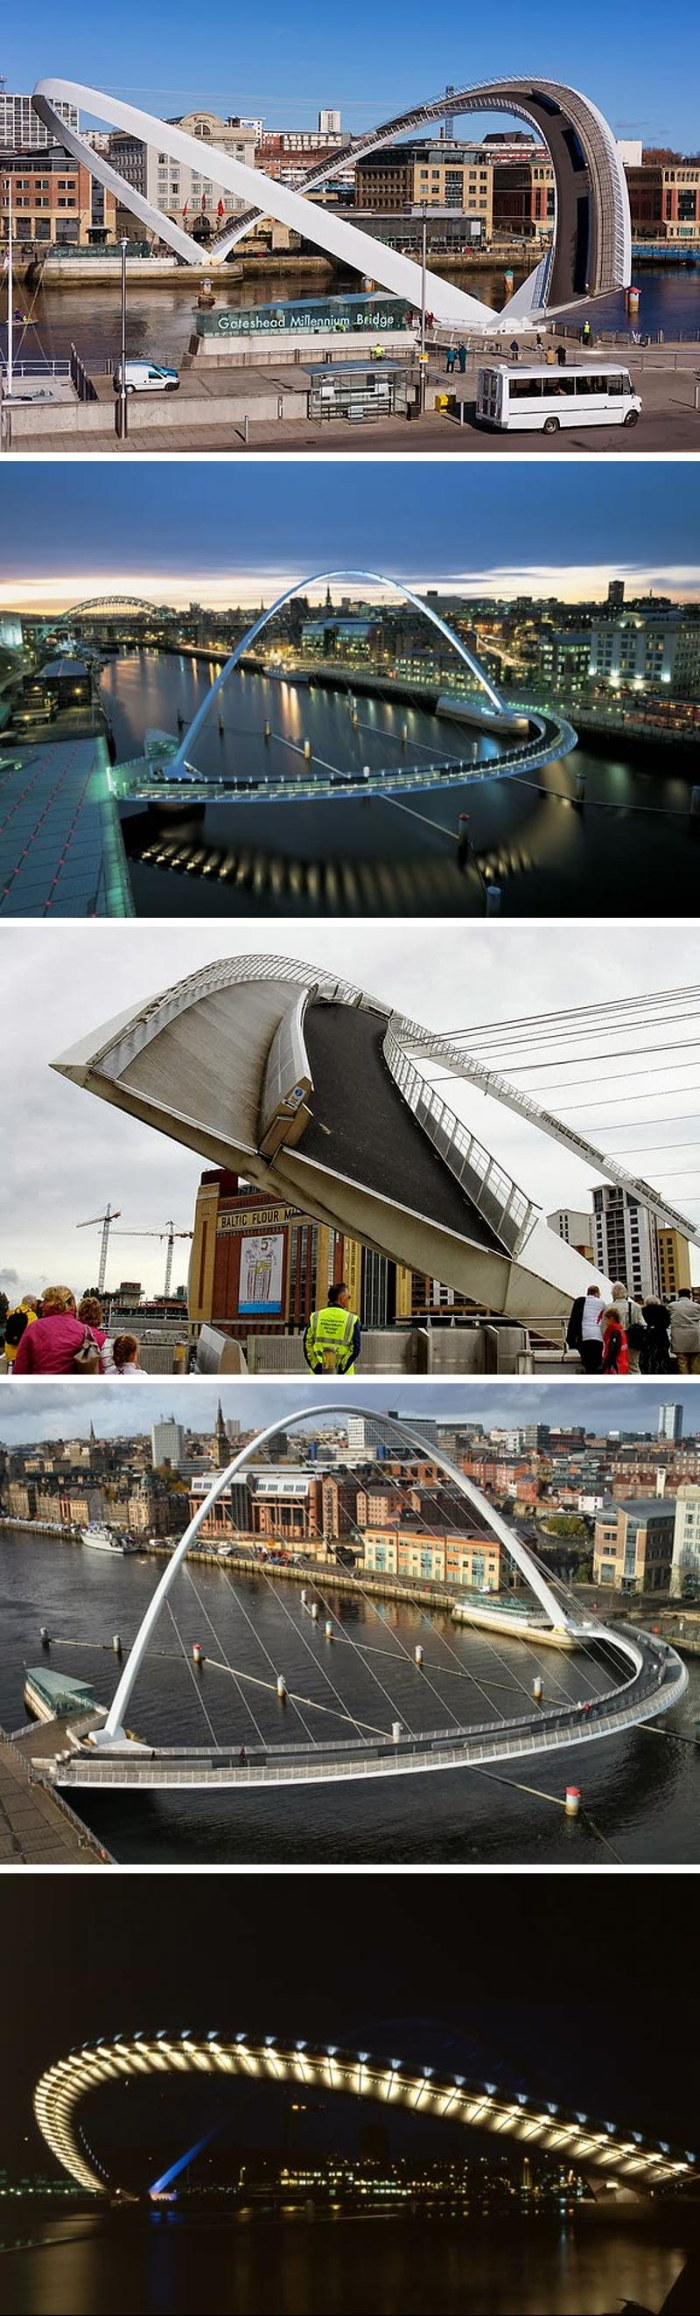 WilksonEyre Architects, Gateshead Millenium Bridge, Winking Eye Bridge, Blinking Eye Bridge, cool movable bridge